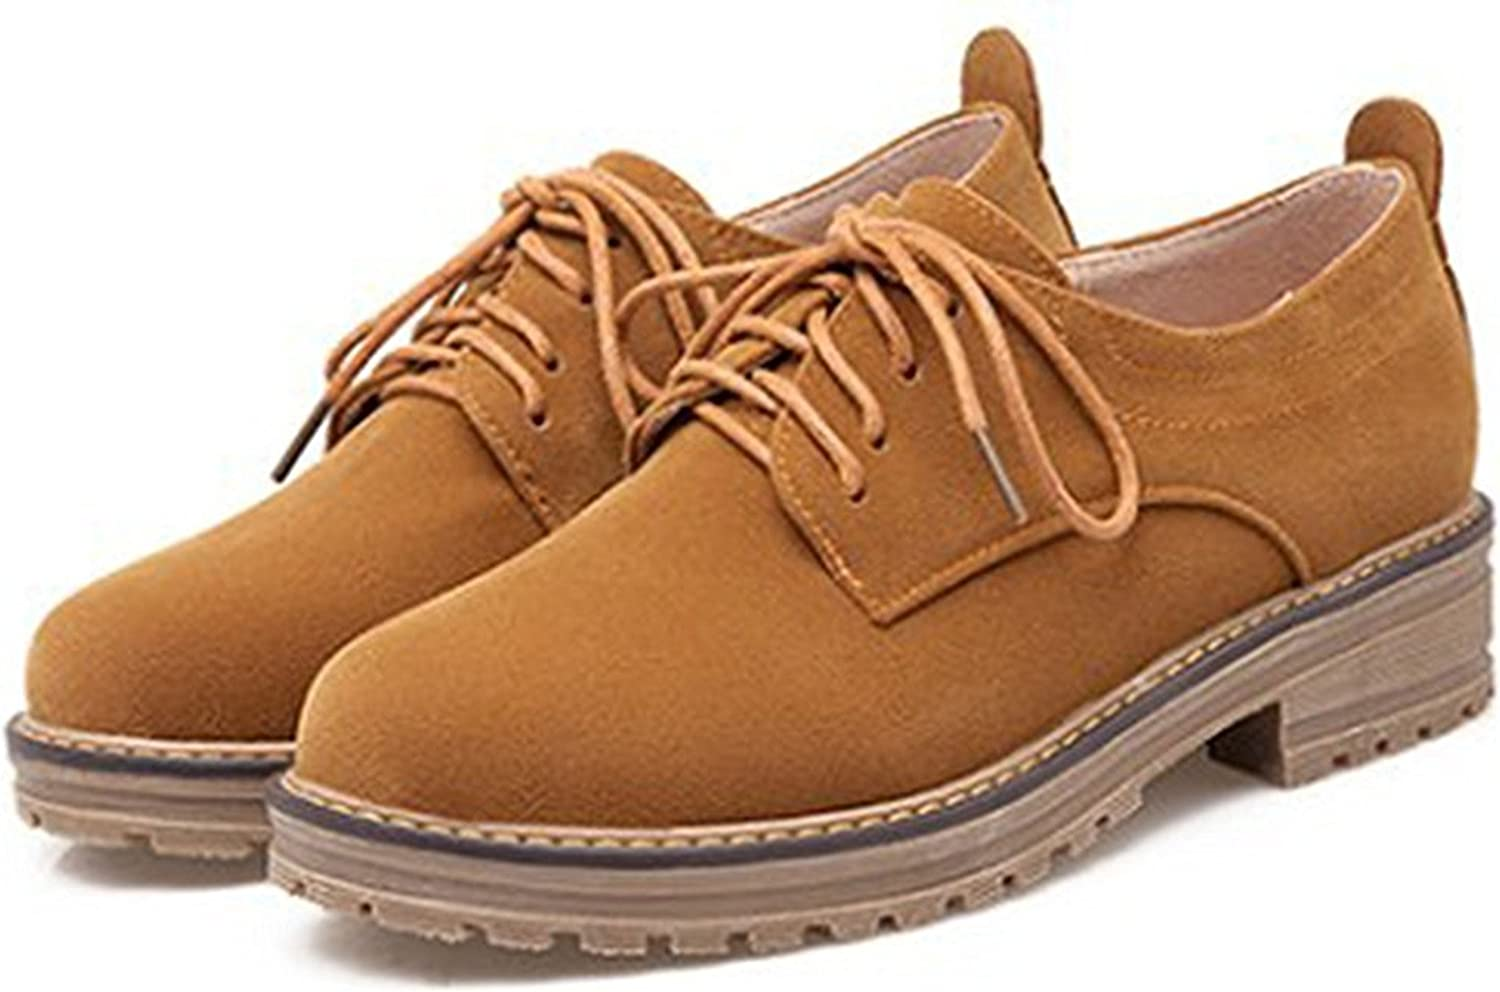 WANabcMAN Comfortable Women's Classic Low Chunky Heel Platform Low Top Lace Up Oxfords shoes